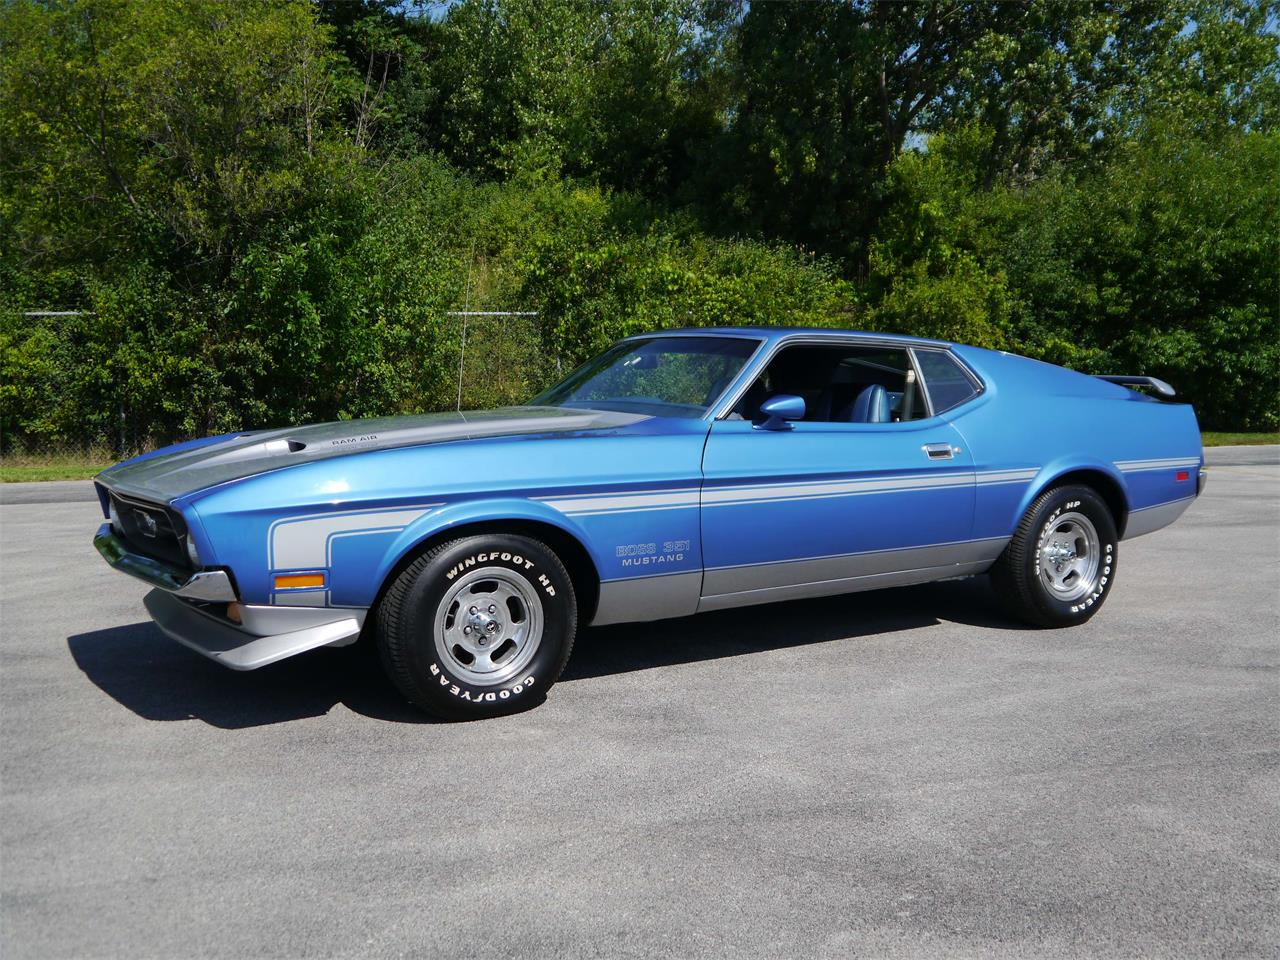 Large picture of 73 mustang mach 1 j4me